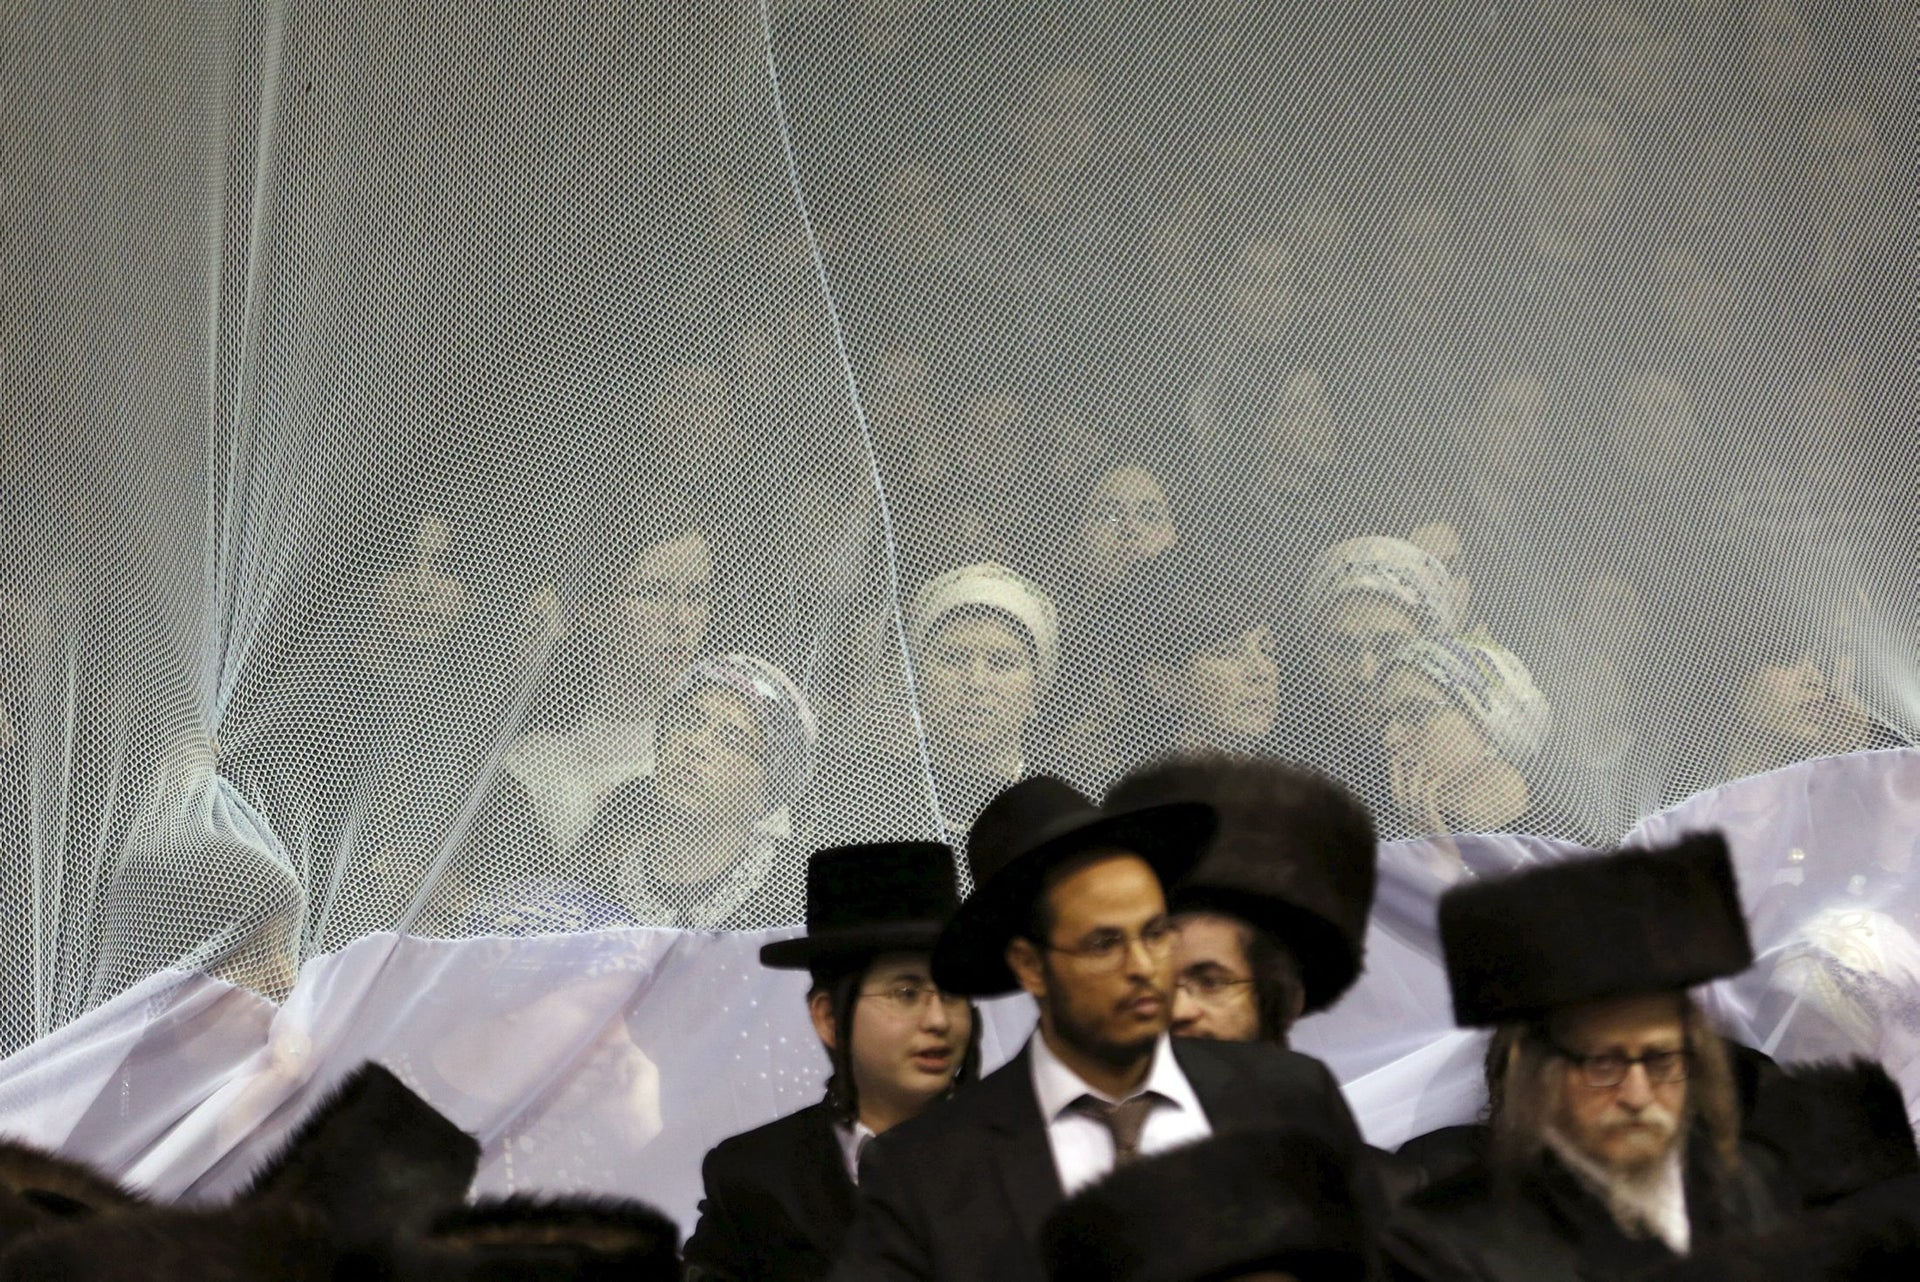 Ultra-Orthodox Jewish men and women attend the wedding ceremony of the grandson of Rabbi Yosef Dov Moshe Halberstam, religious leader of the Sanz Hasidic dynasty, and the granddaughter of the religious leader of Toldos Avraham Yitzchak Hasidic dynasty, in Netanya, Israel, early March 16, 2016.